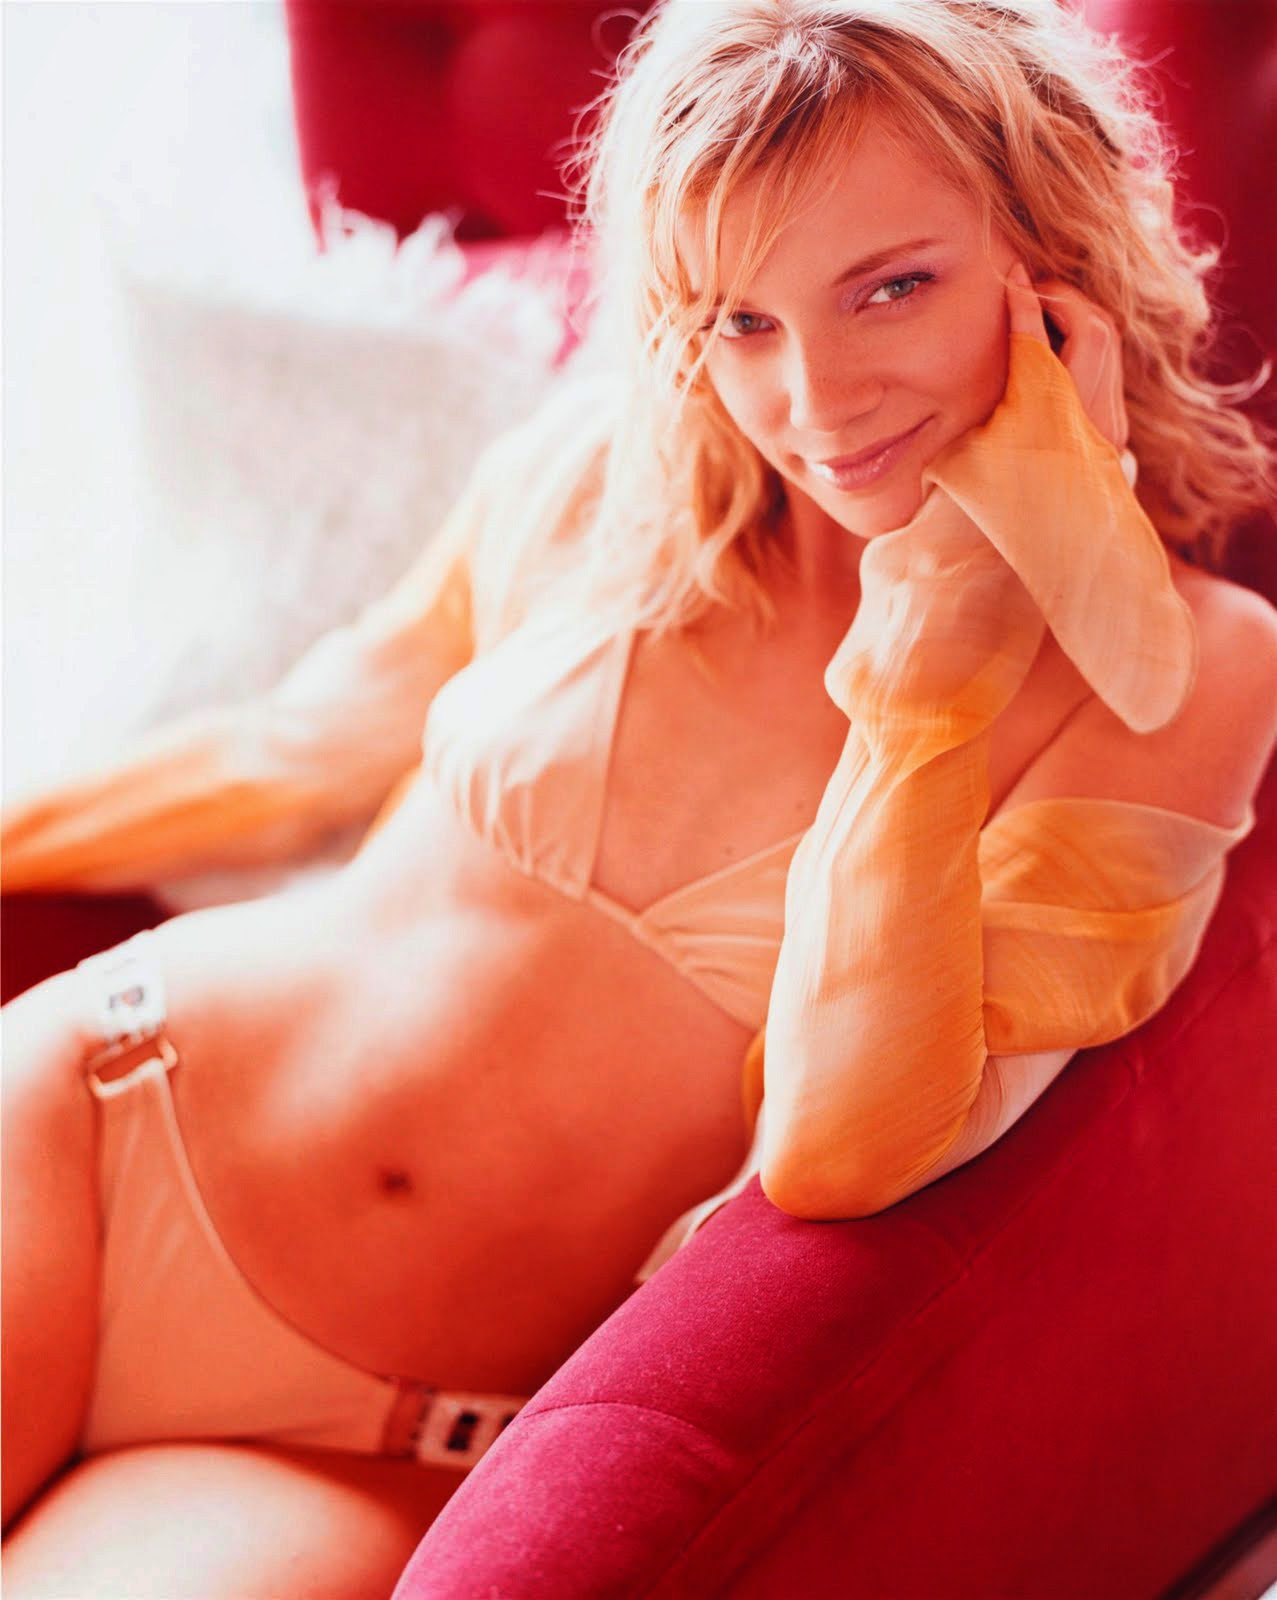 amy-smart-in-panty-sitting-on-couch